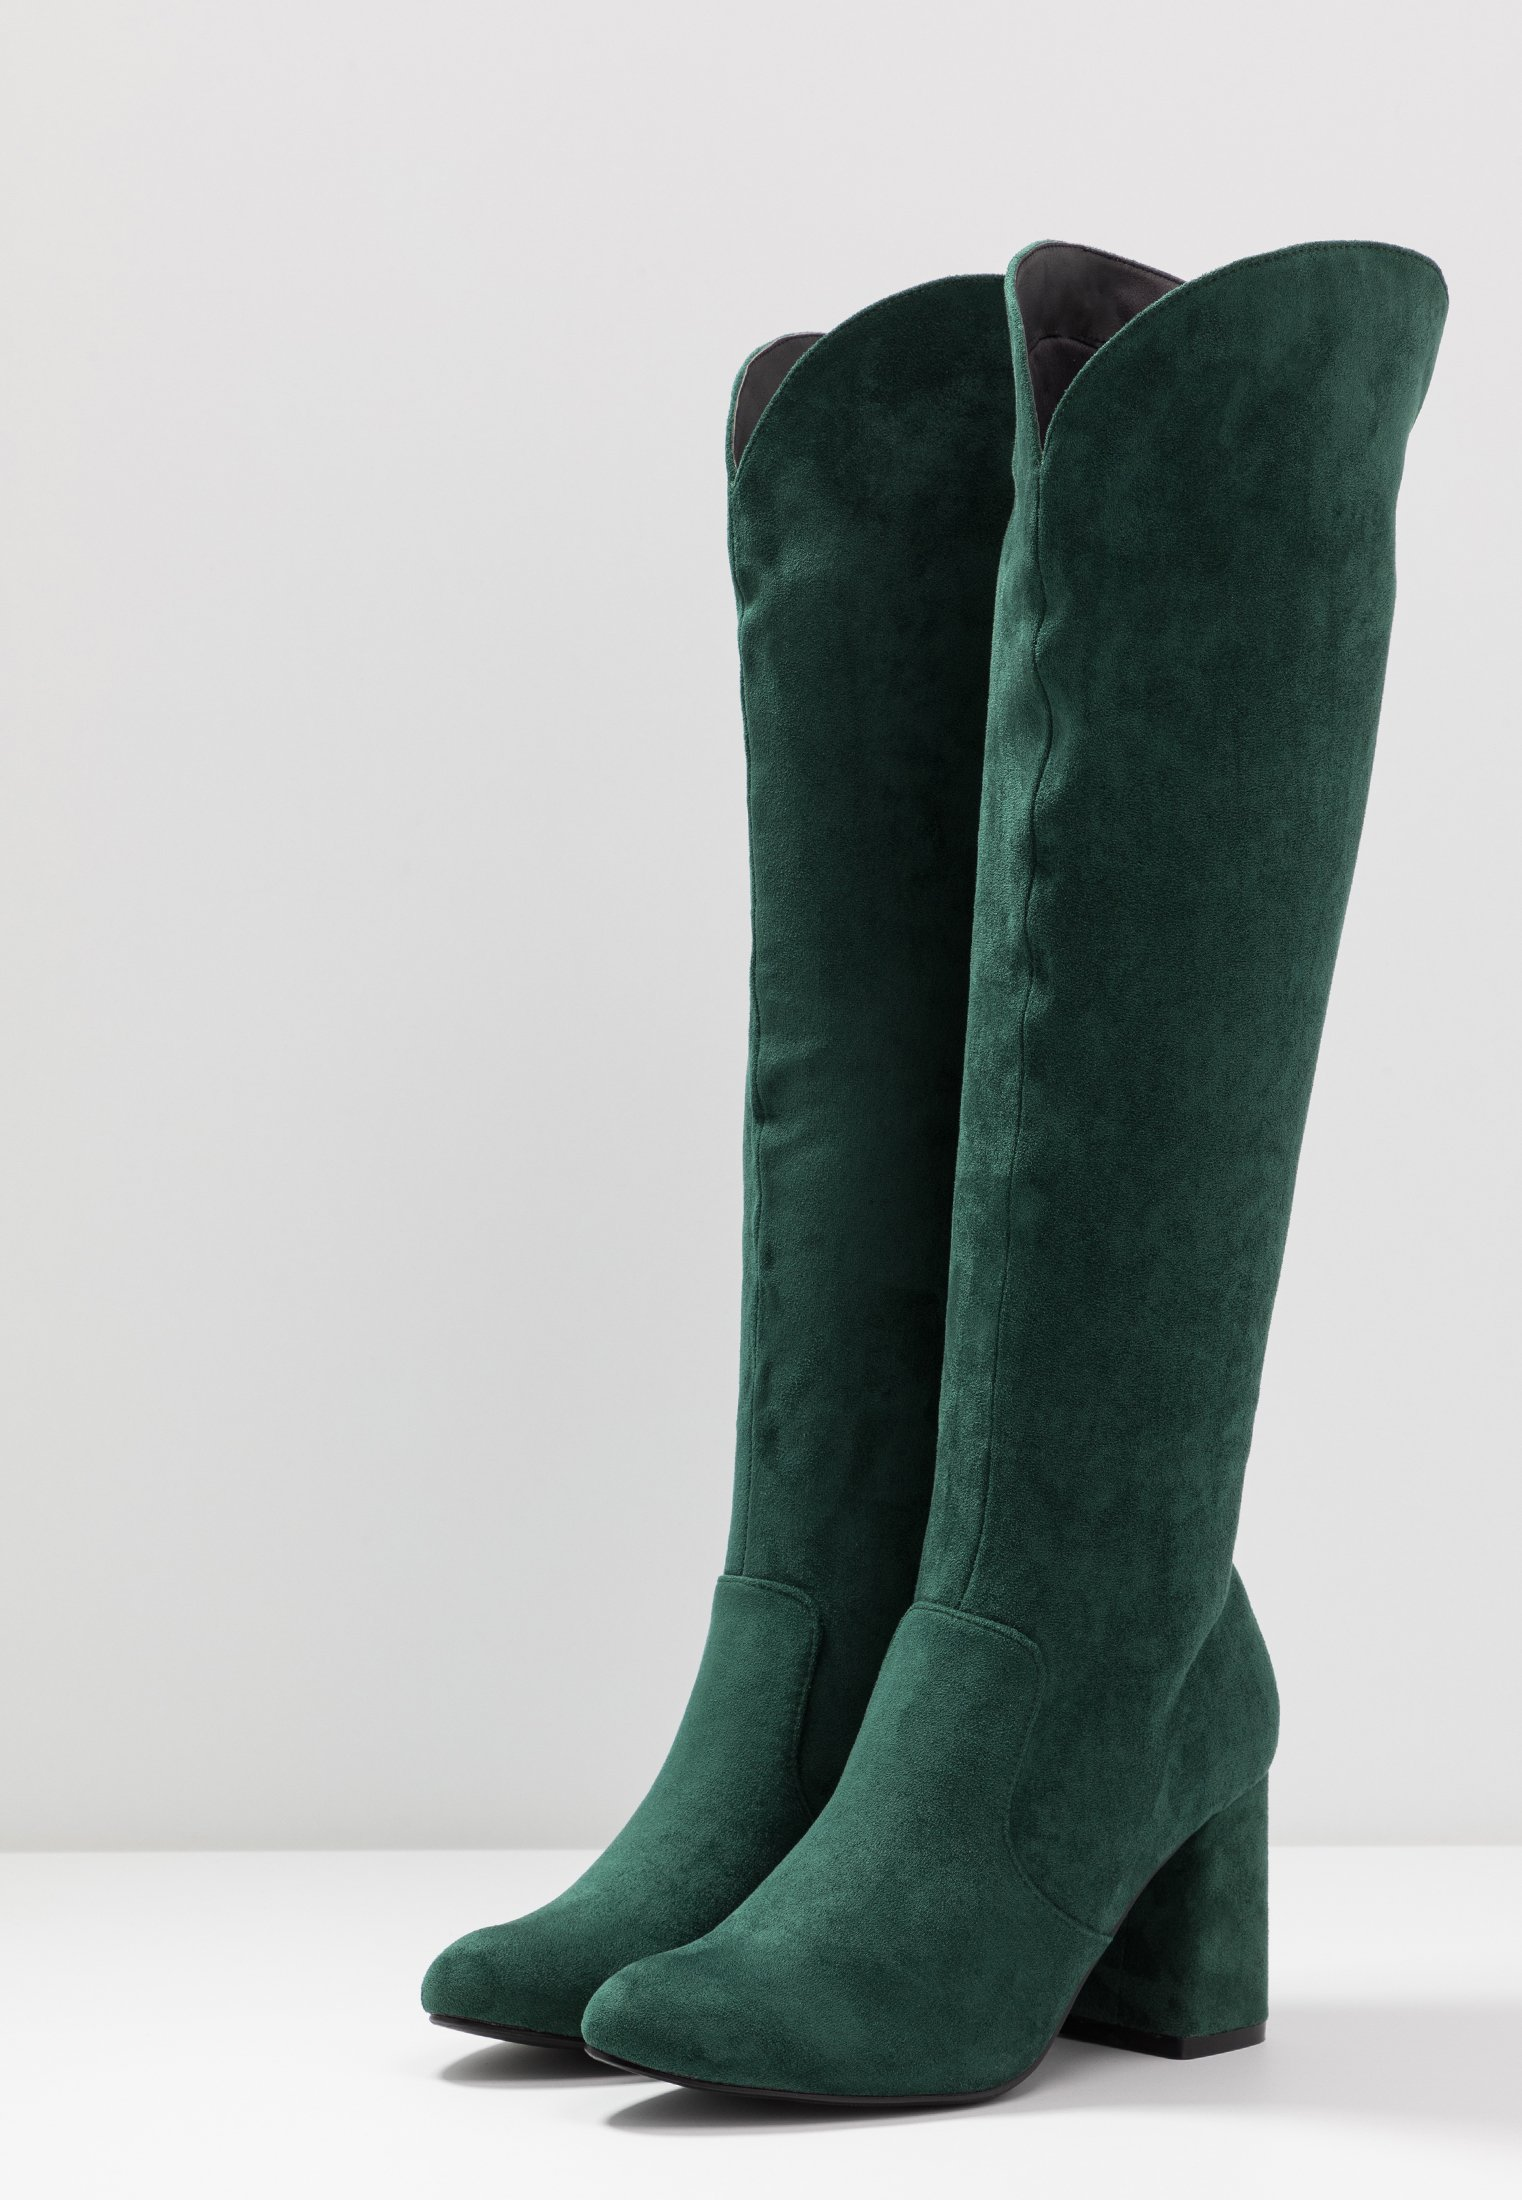 4th & Reckless WALKER - Bottes - teal teal